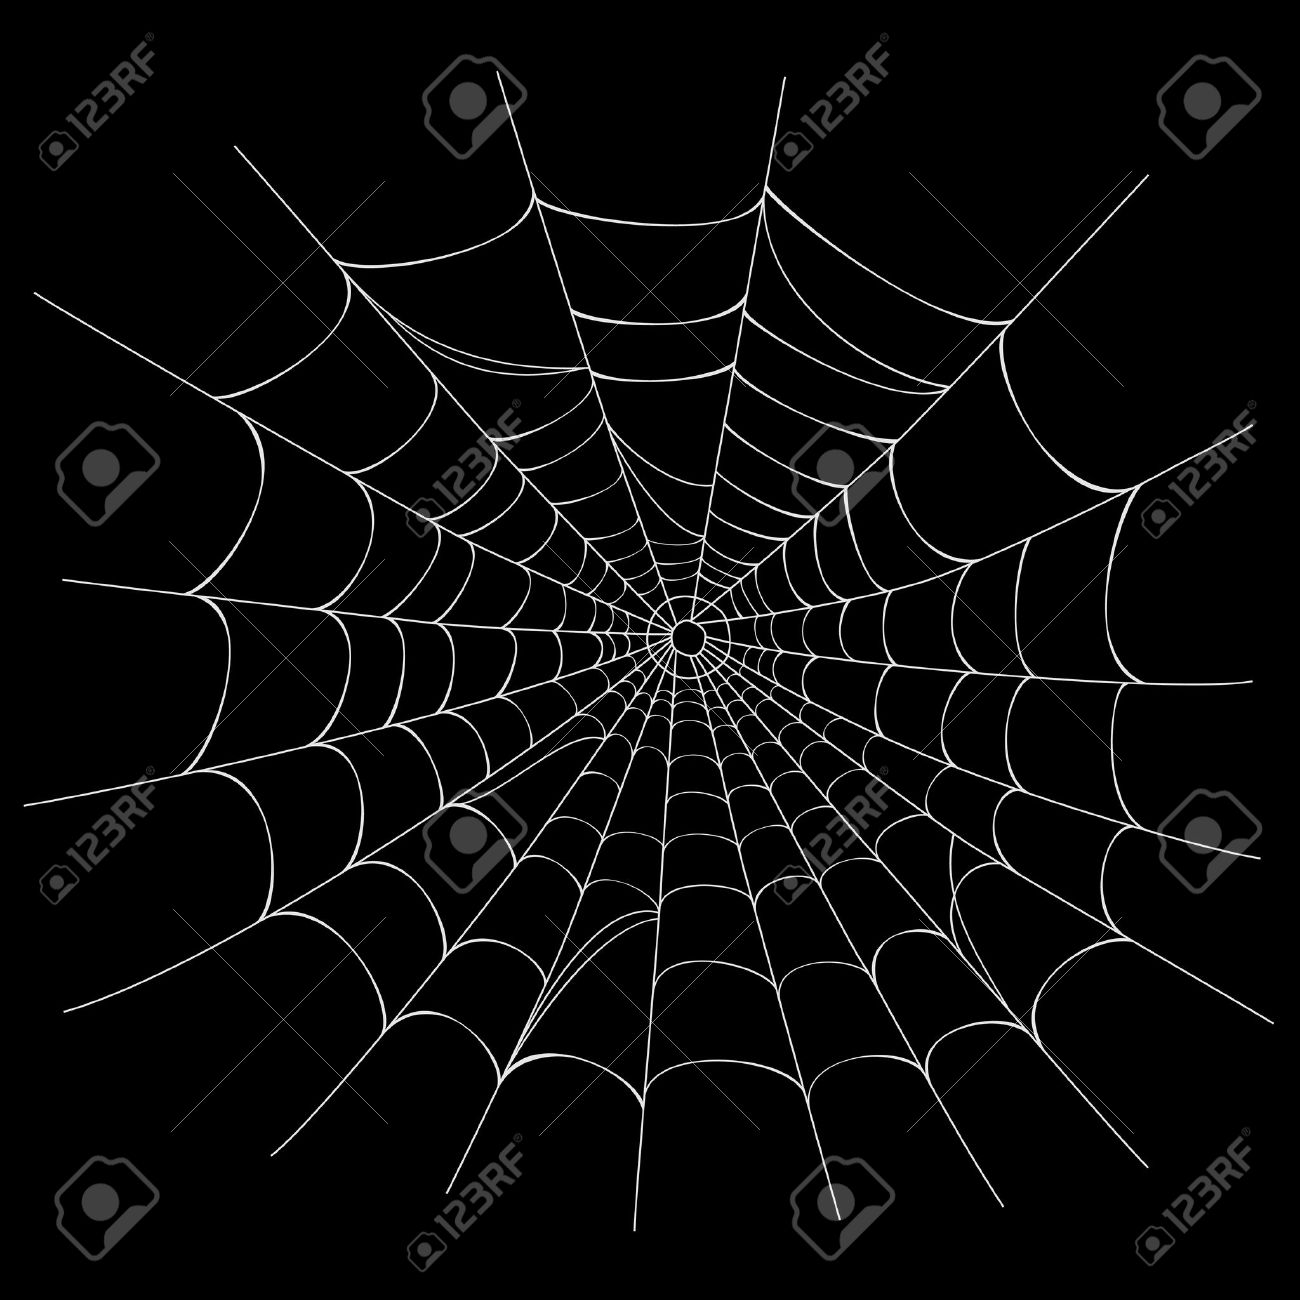 Background image effects - Creepy Spider Web Over Black Background Ai 8 No Effects Easy Printing